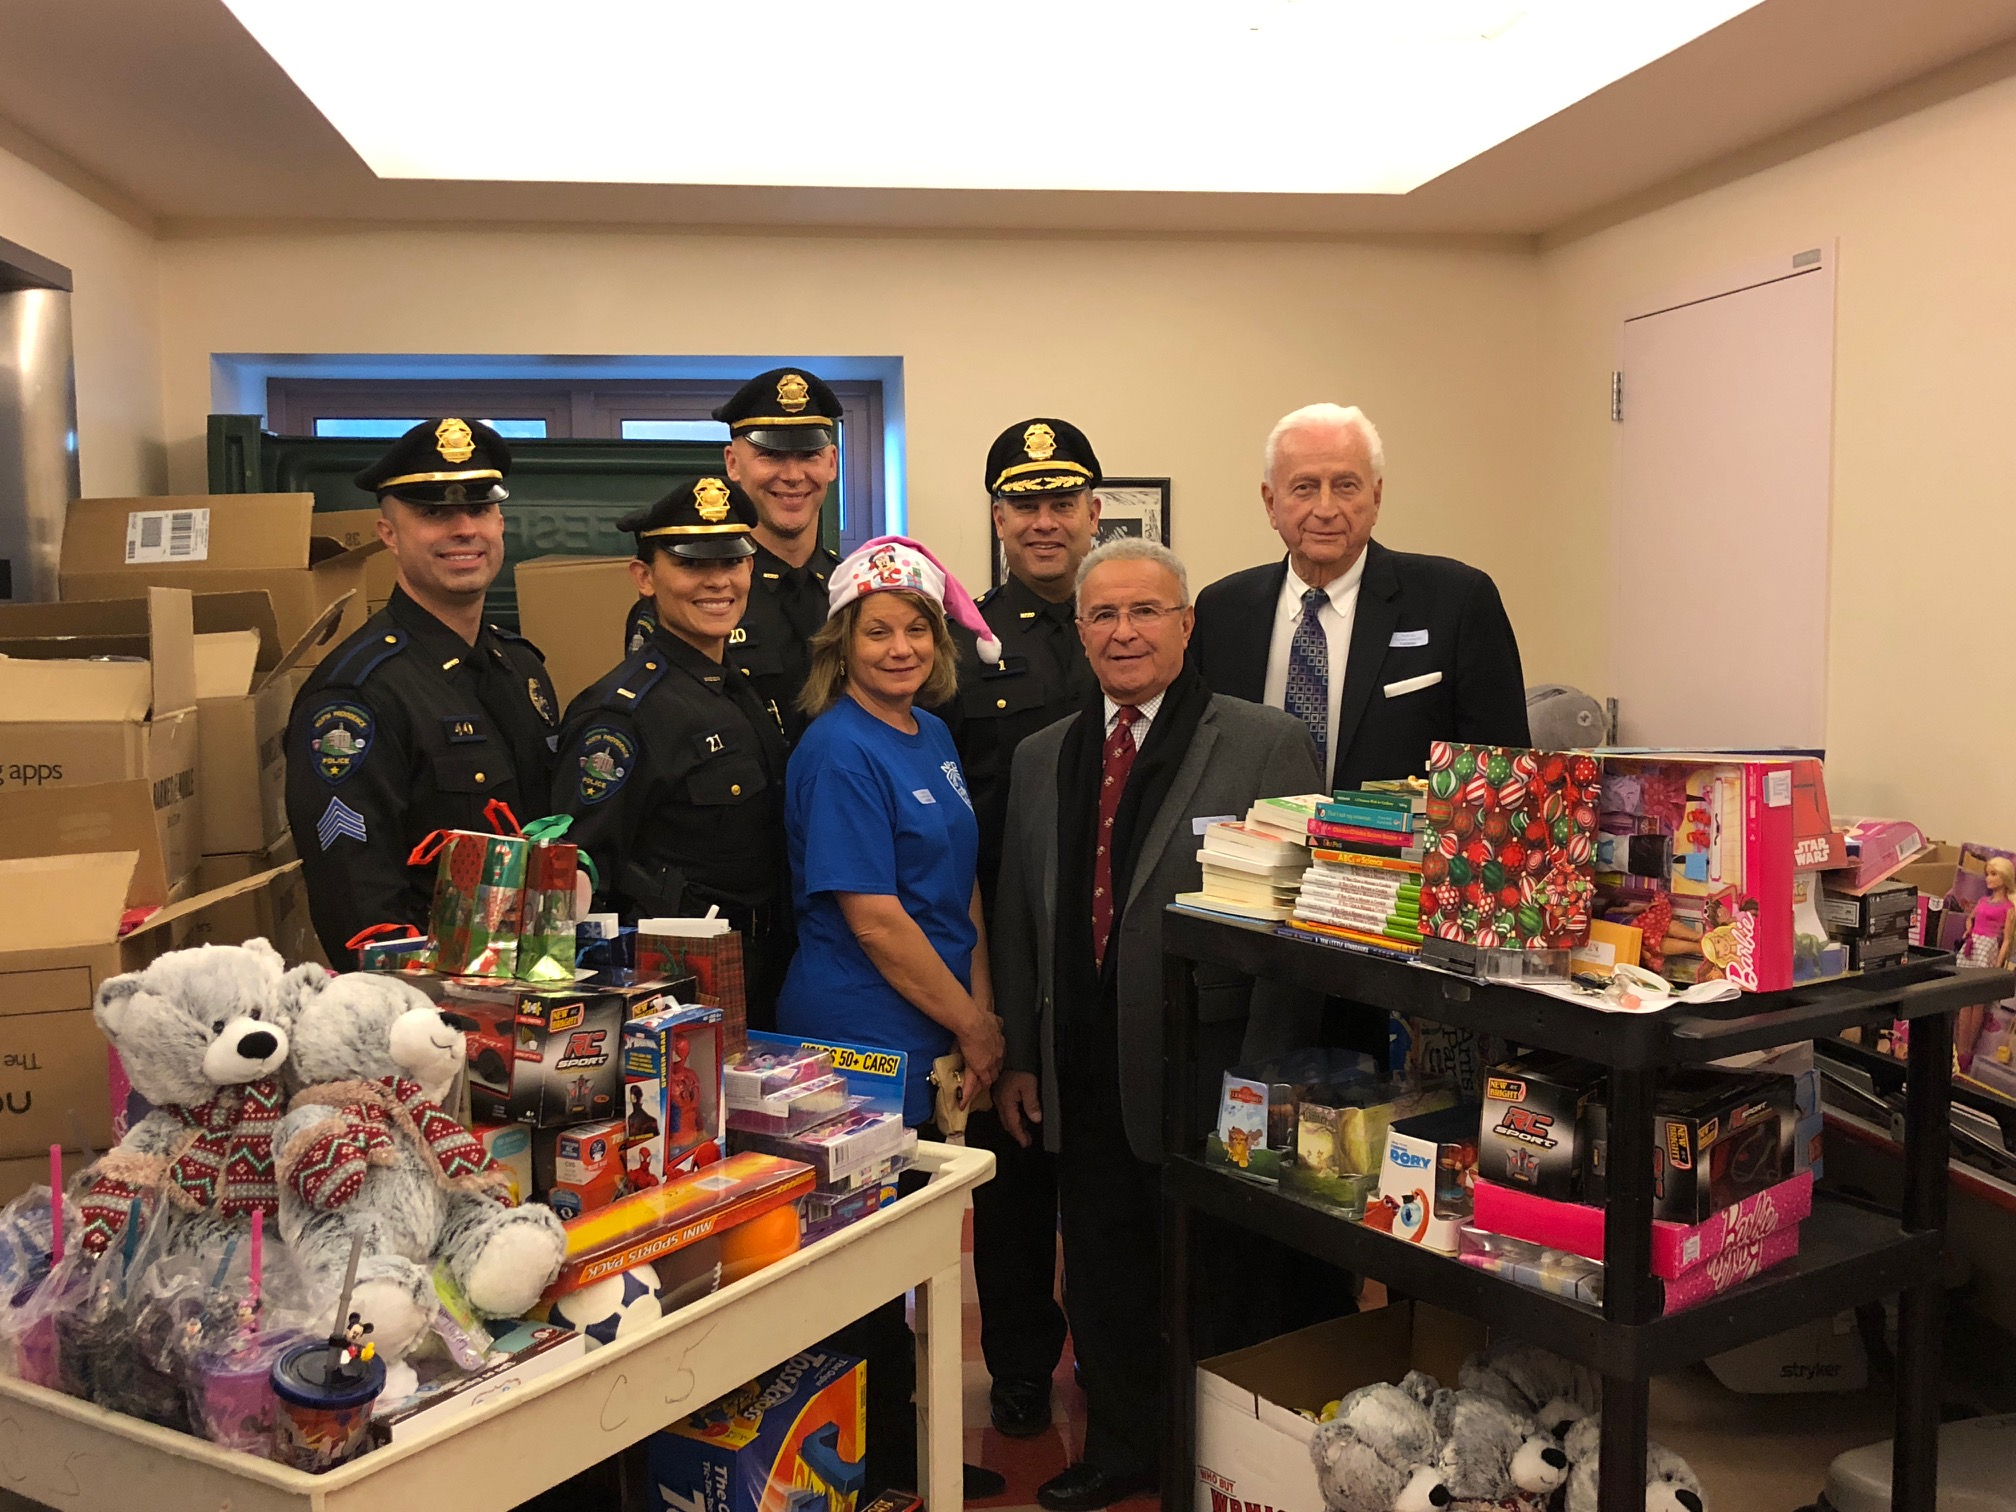 2017 Christmas Toy Drive at Hasbro Childrens Hospital